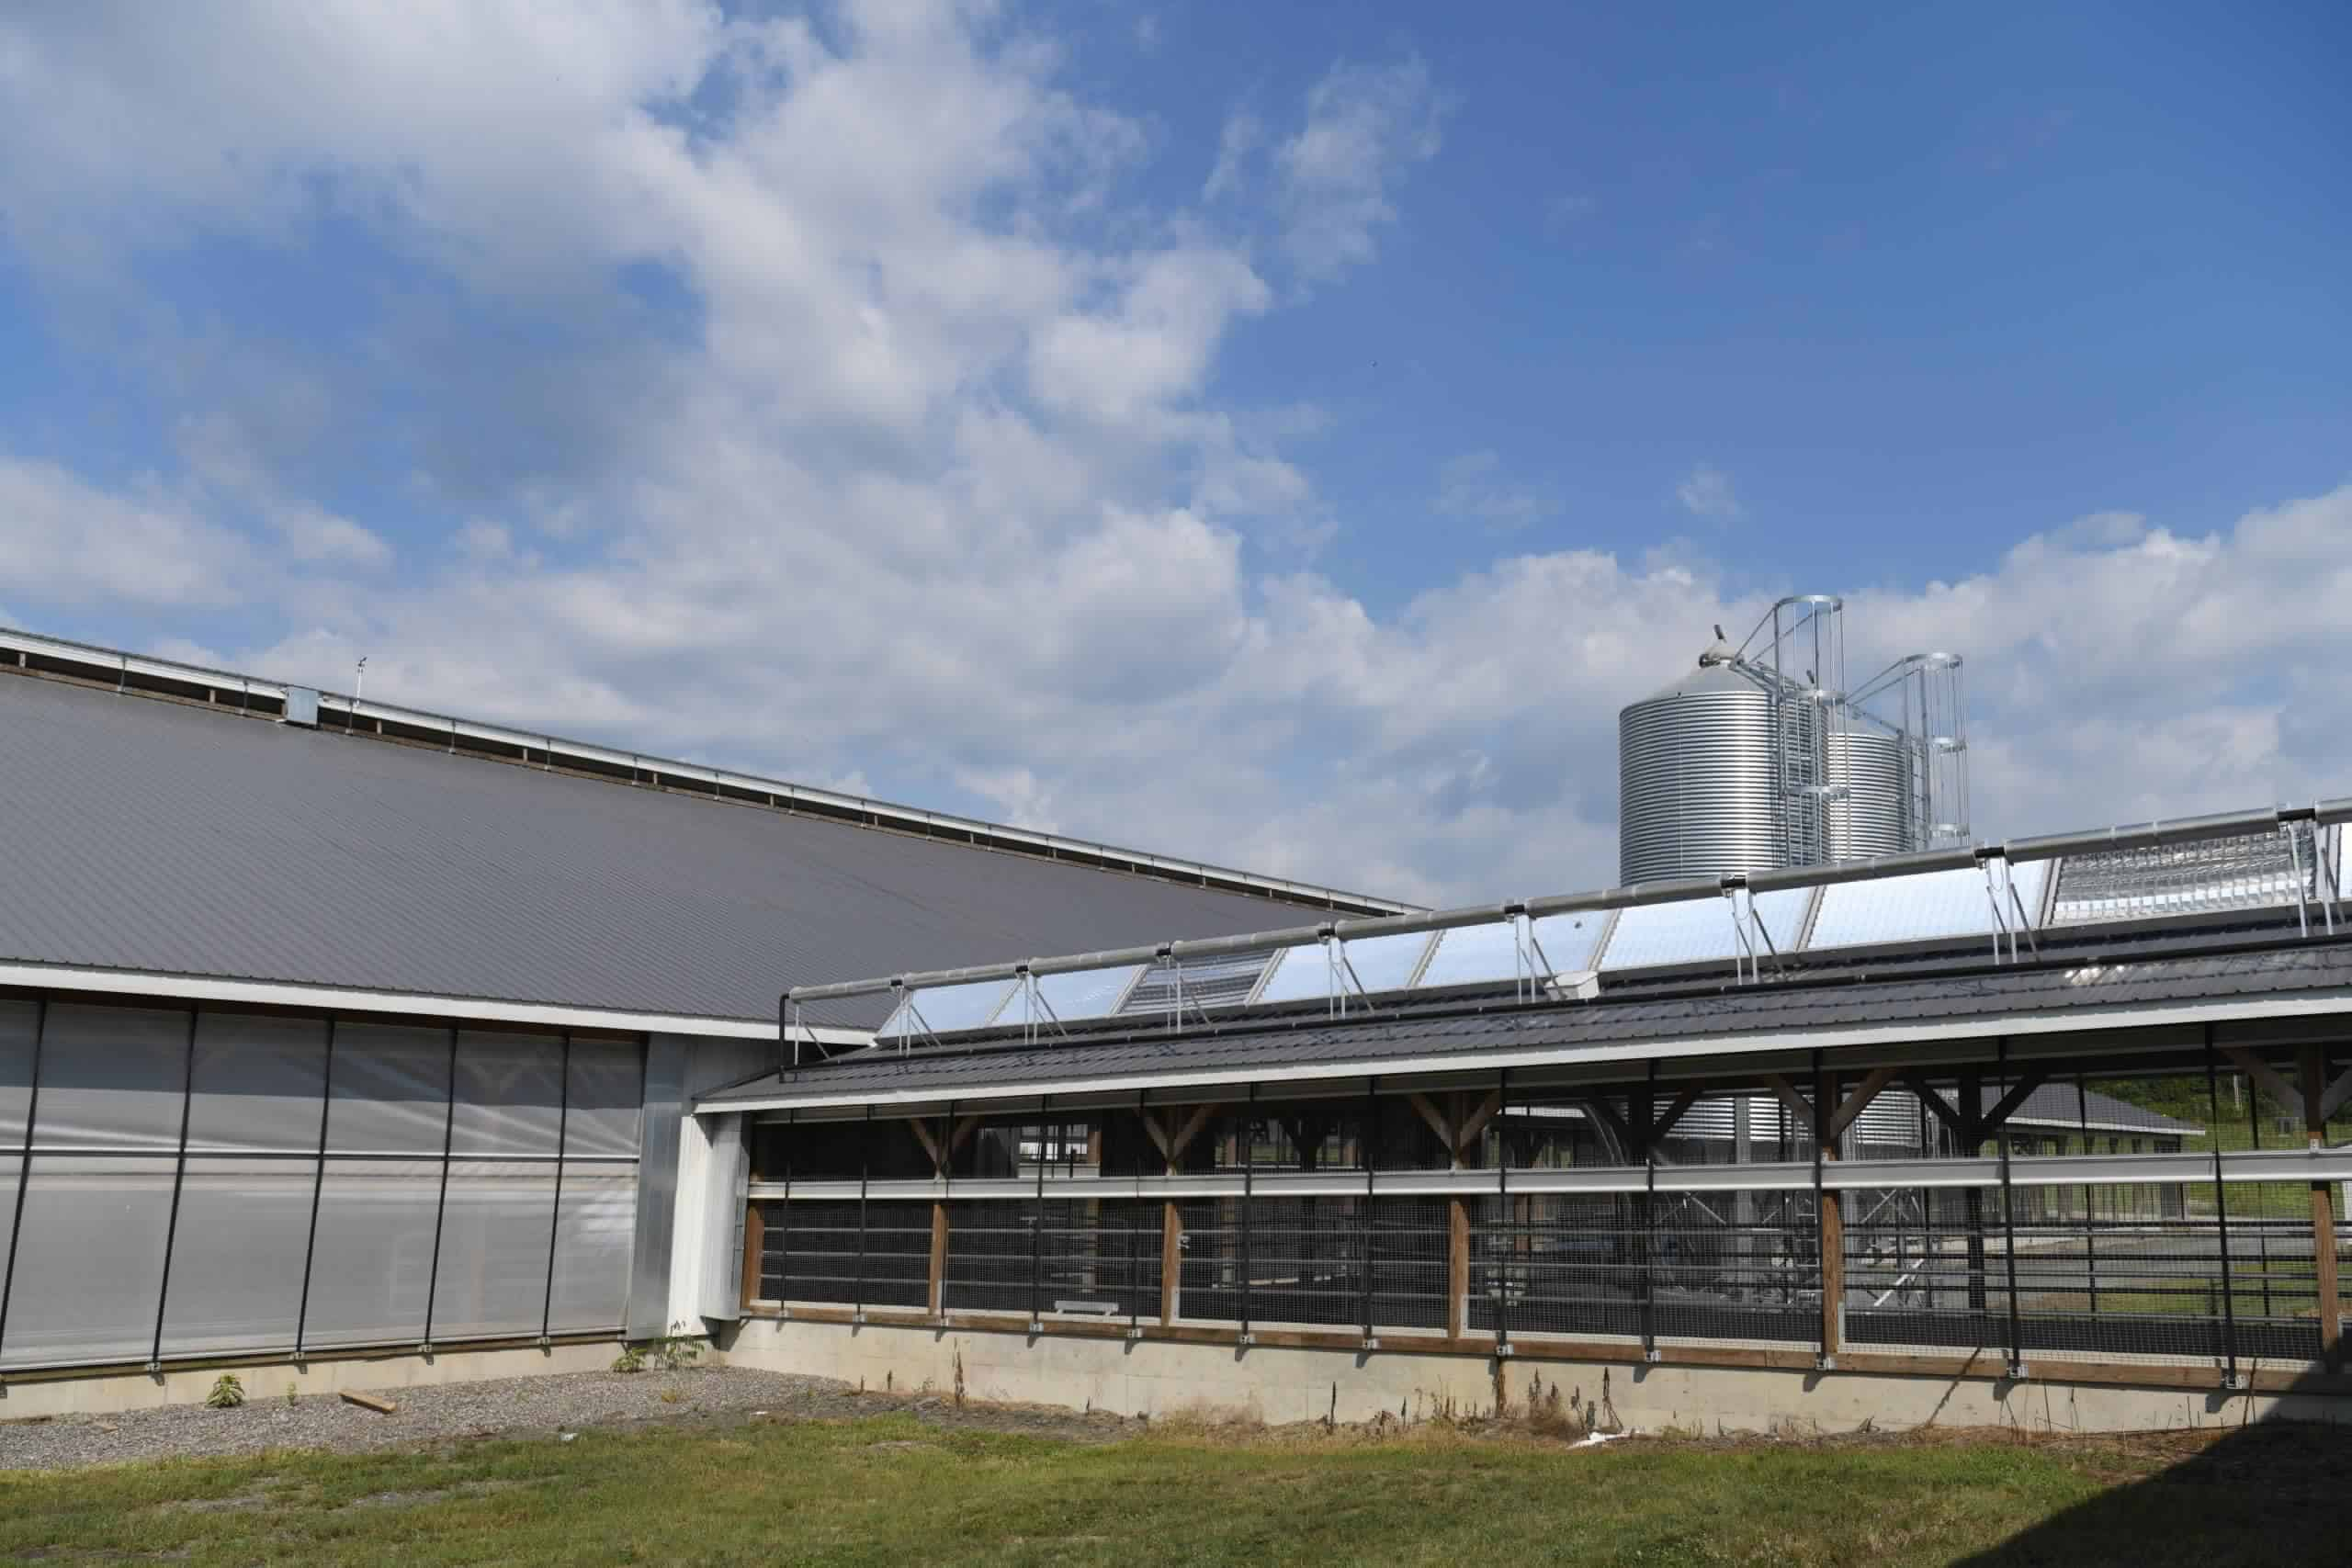 Using Solar to Displace Fossil Fuels for Process Heat in Industrial Facilities